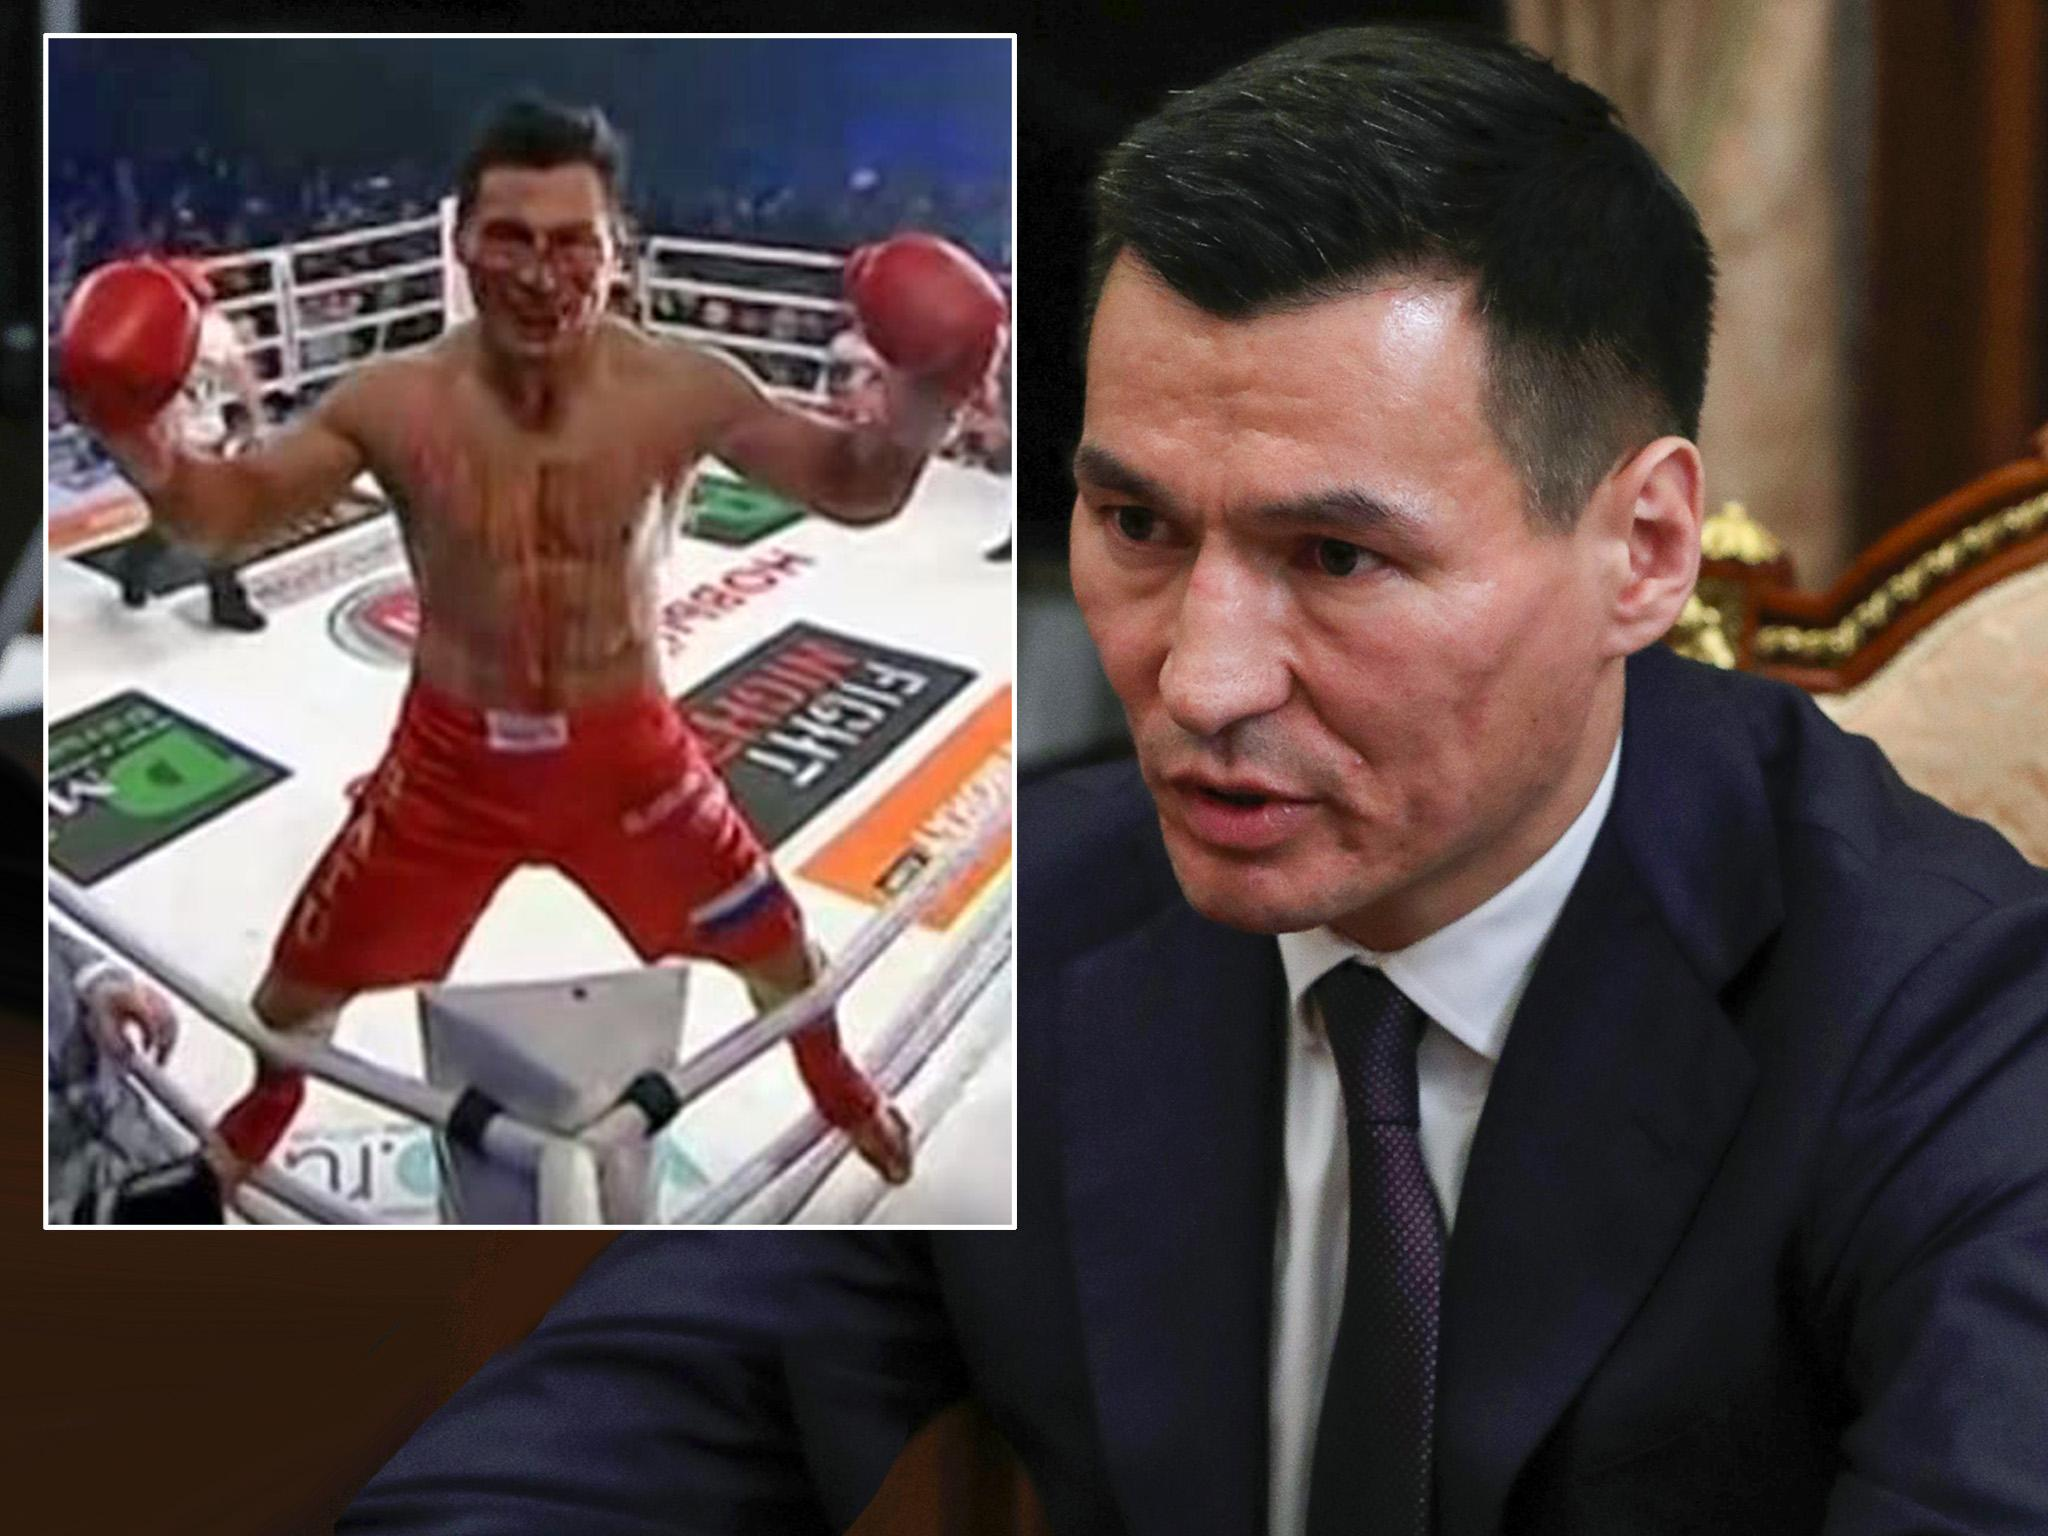 Vladimir Putin Appoints Kickboxer To Head Russian Region The Independent The Independent